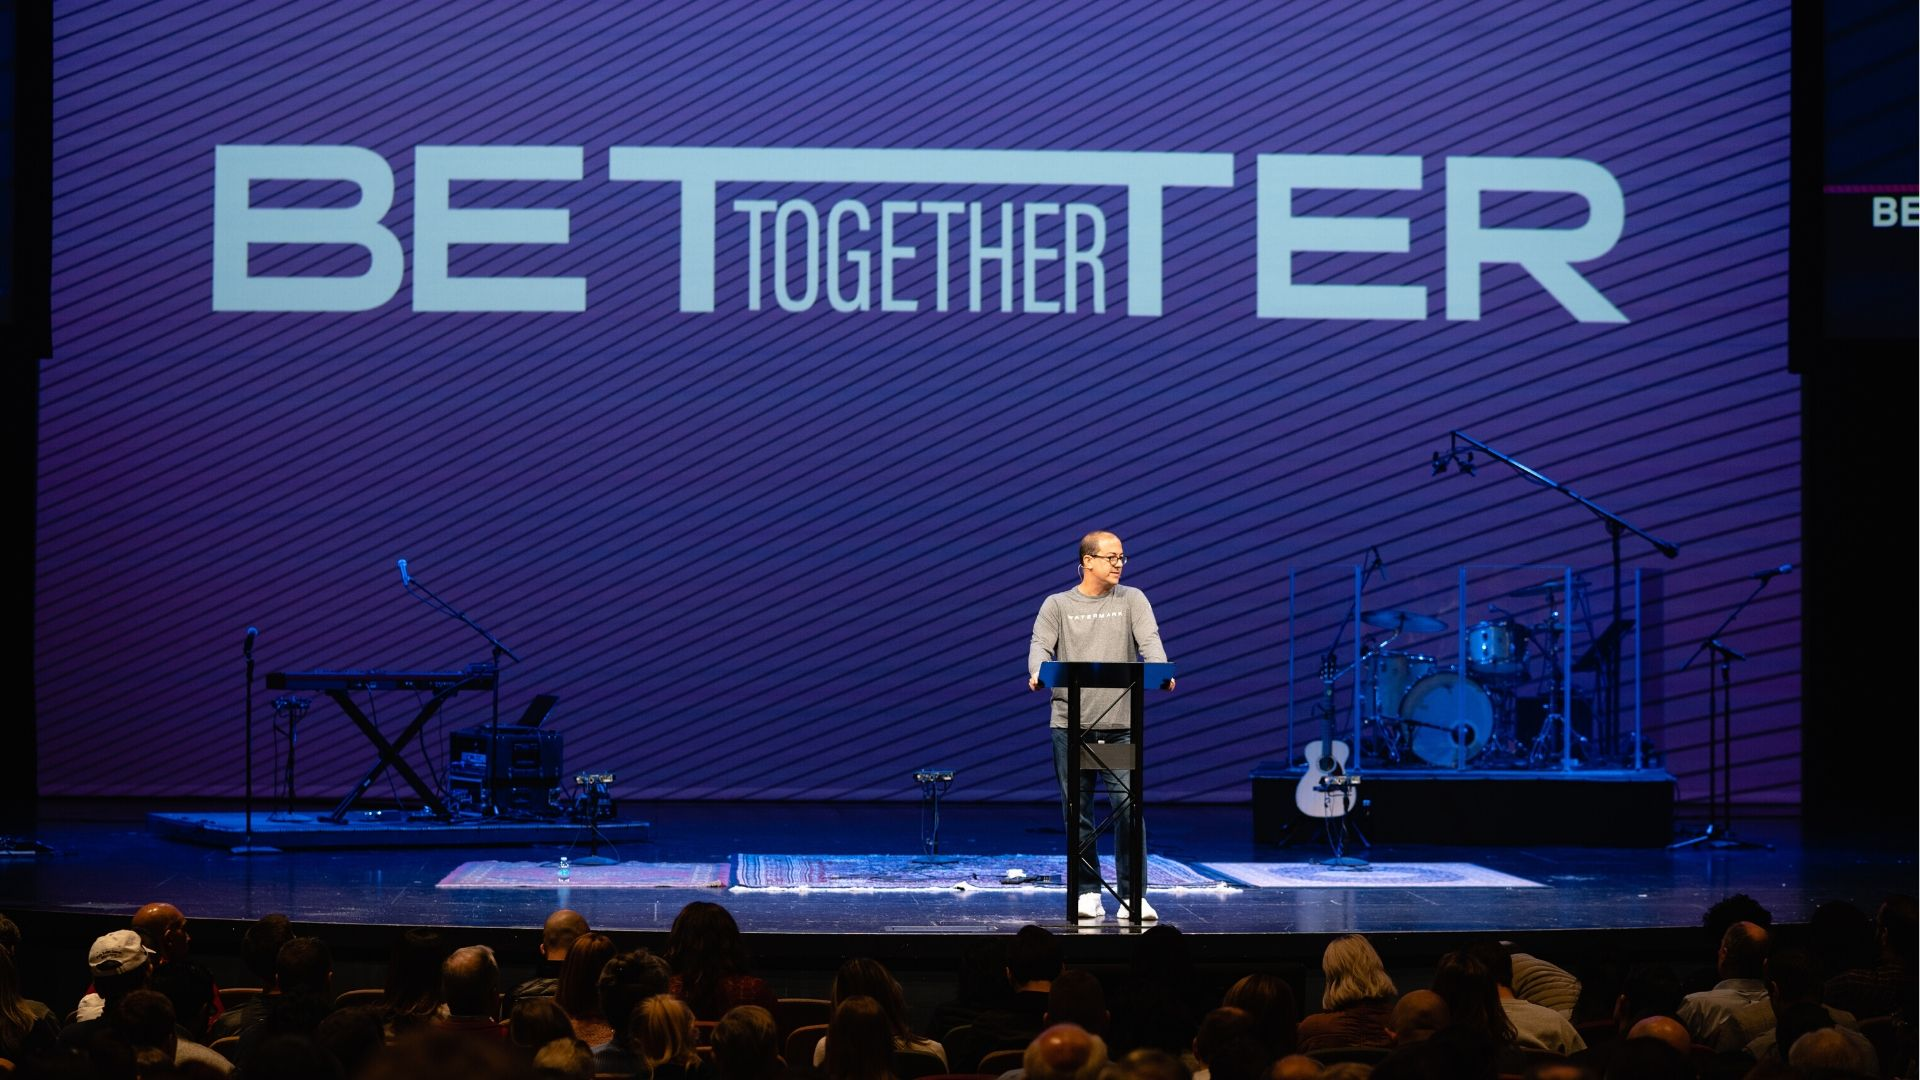 Community Part 4: A Call to Shepherd One Another